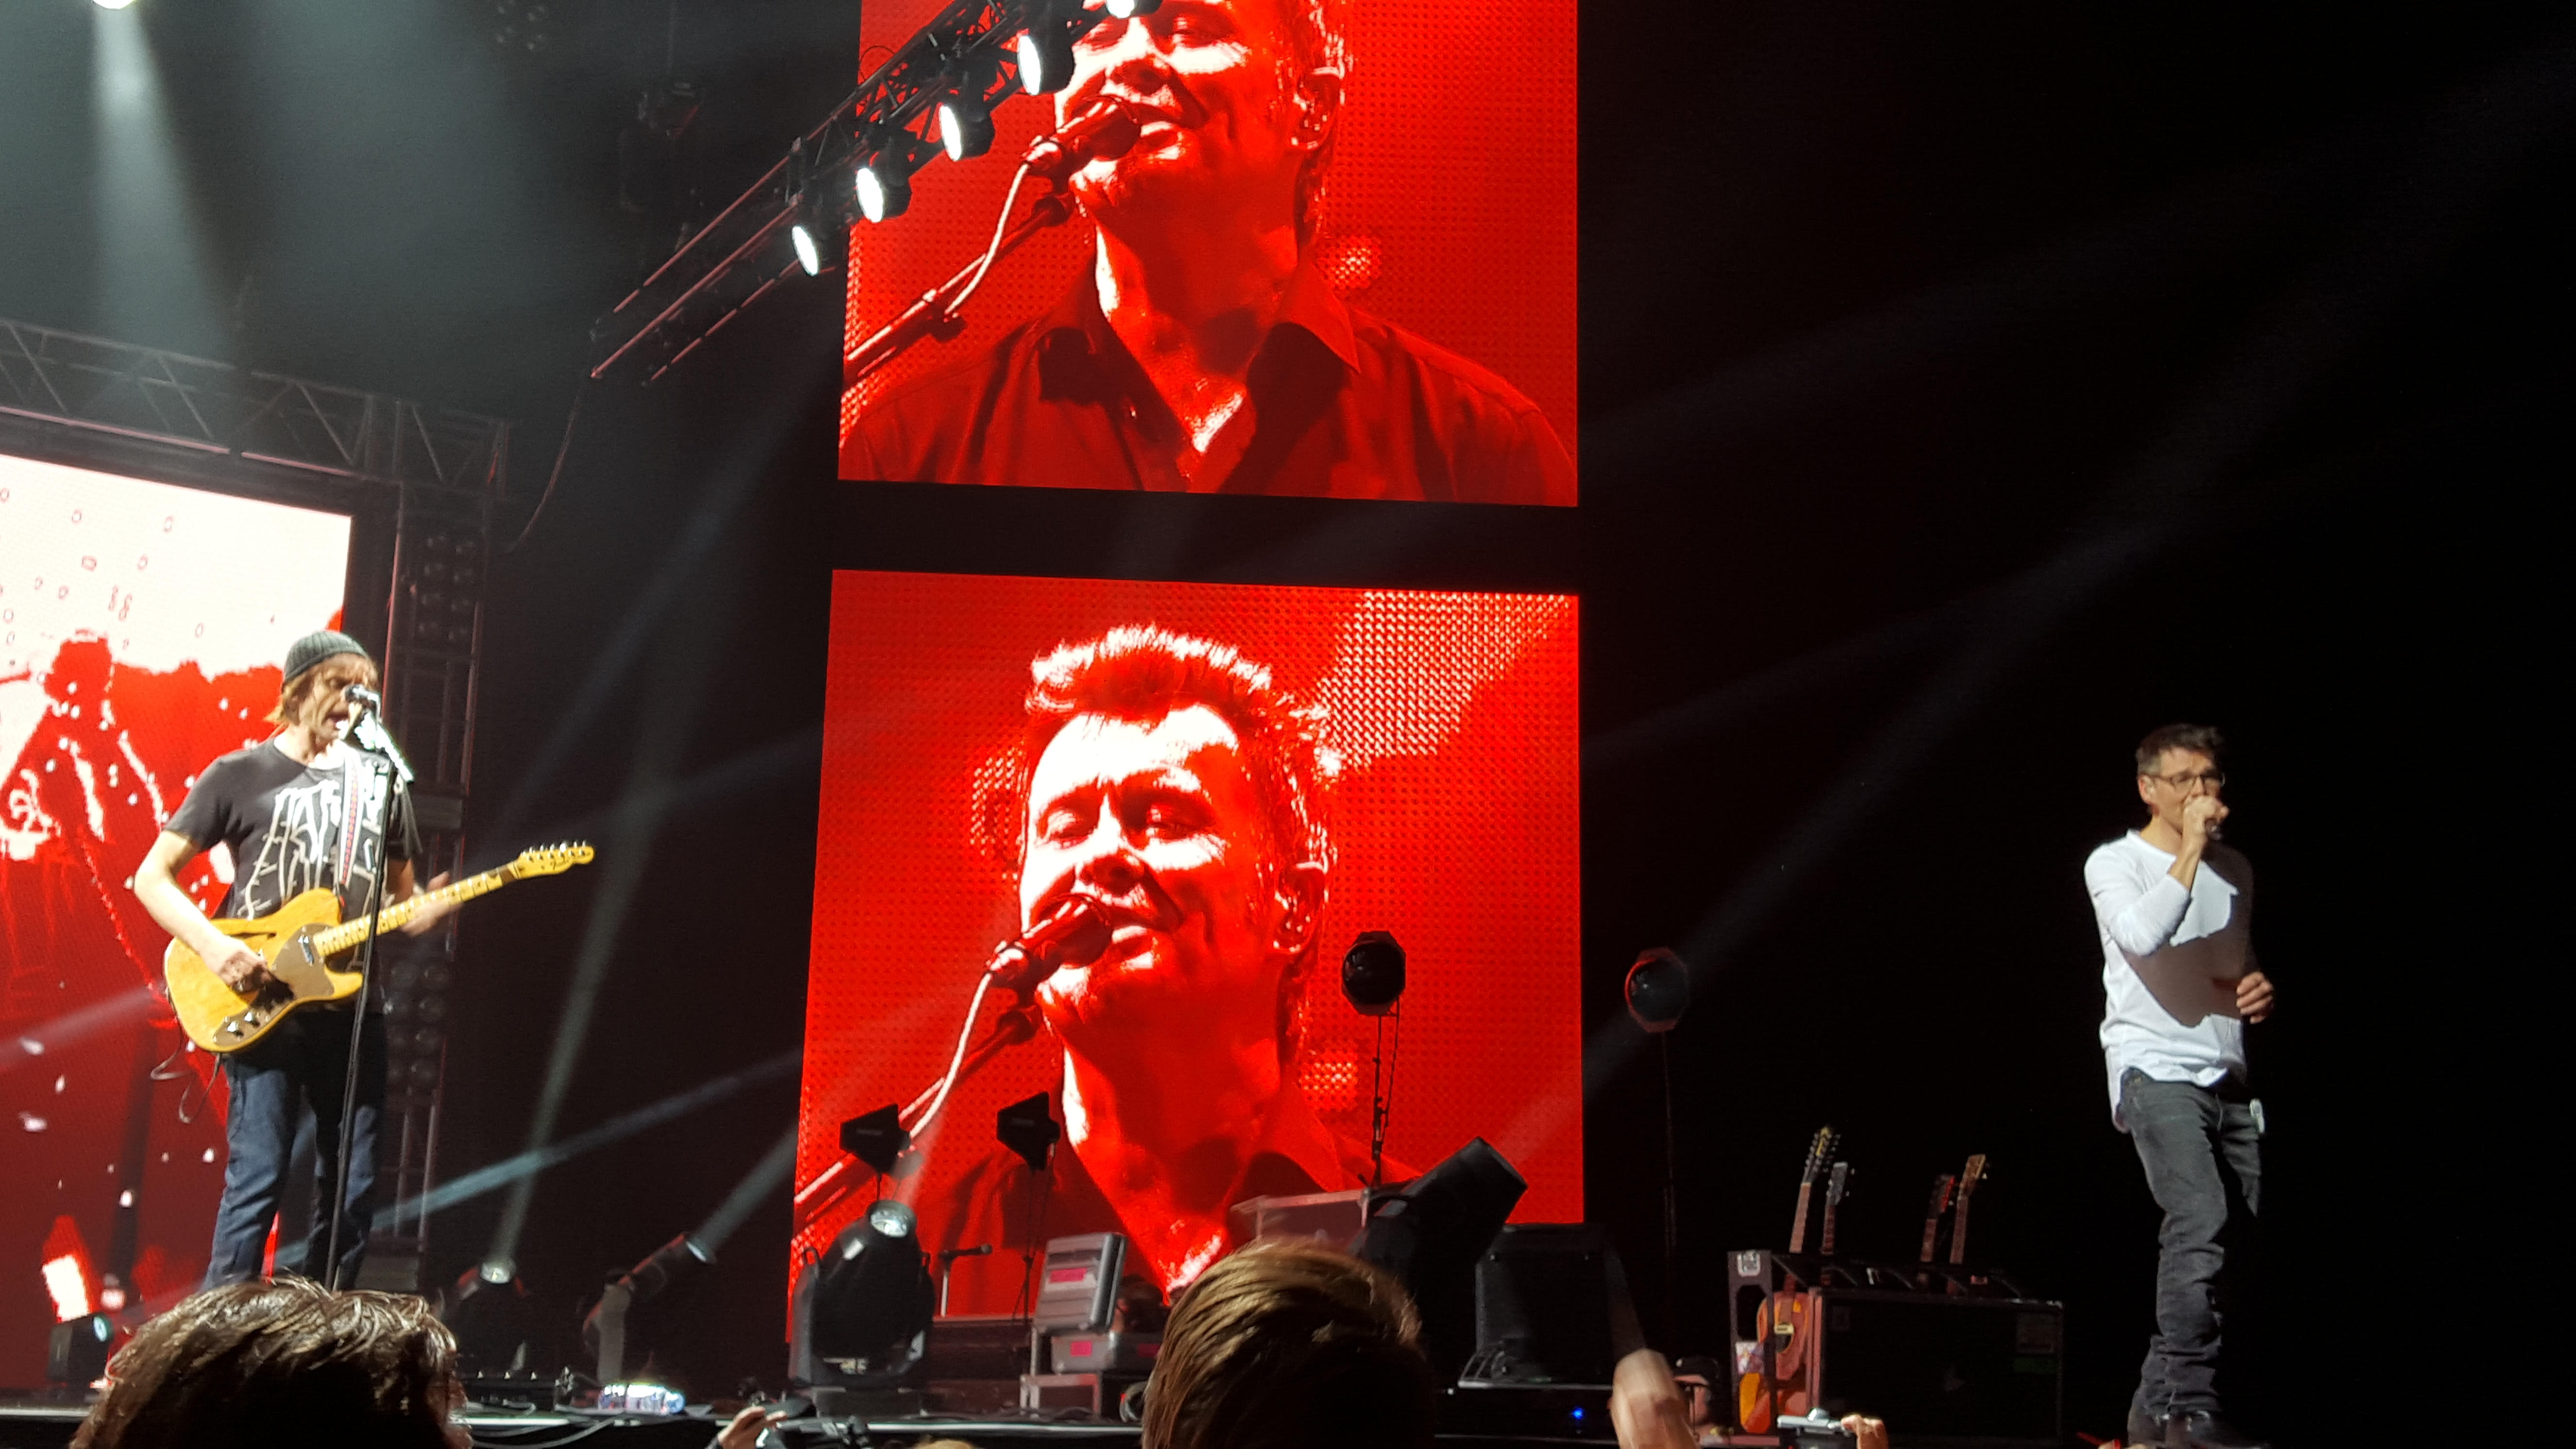 Magne F performing at a-ha Oslo Spektrum concert